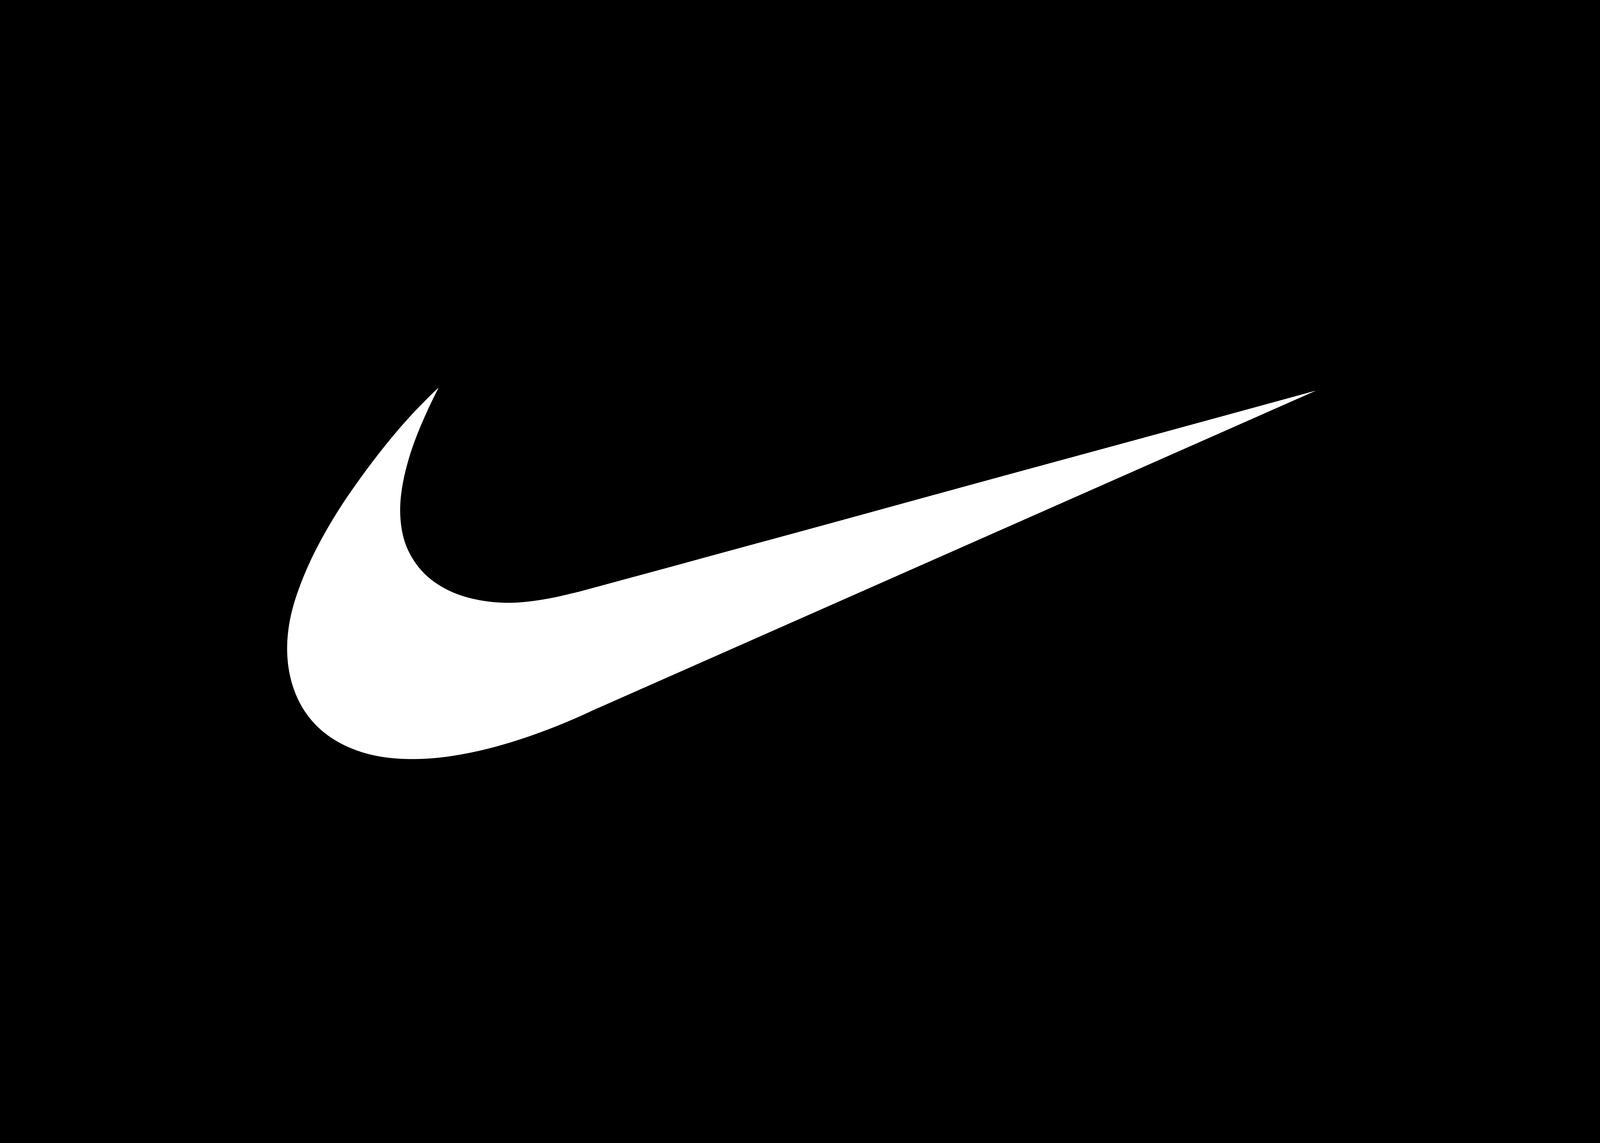 Affiliates of Apollo Global Management and NIKE Inc Announce Strategic Partnership for Apparel